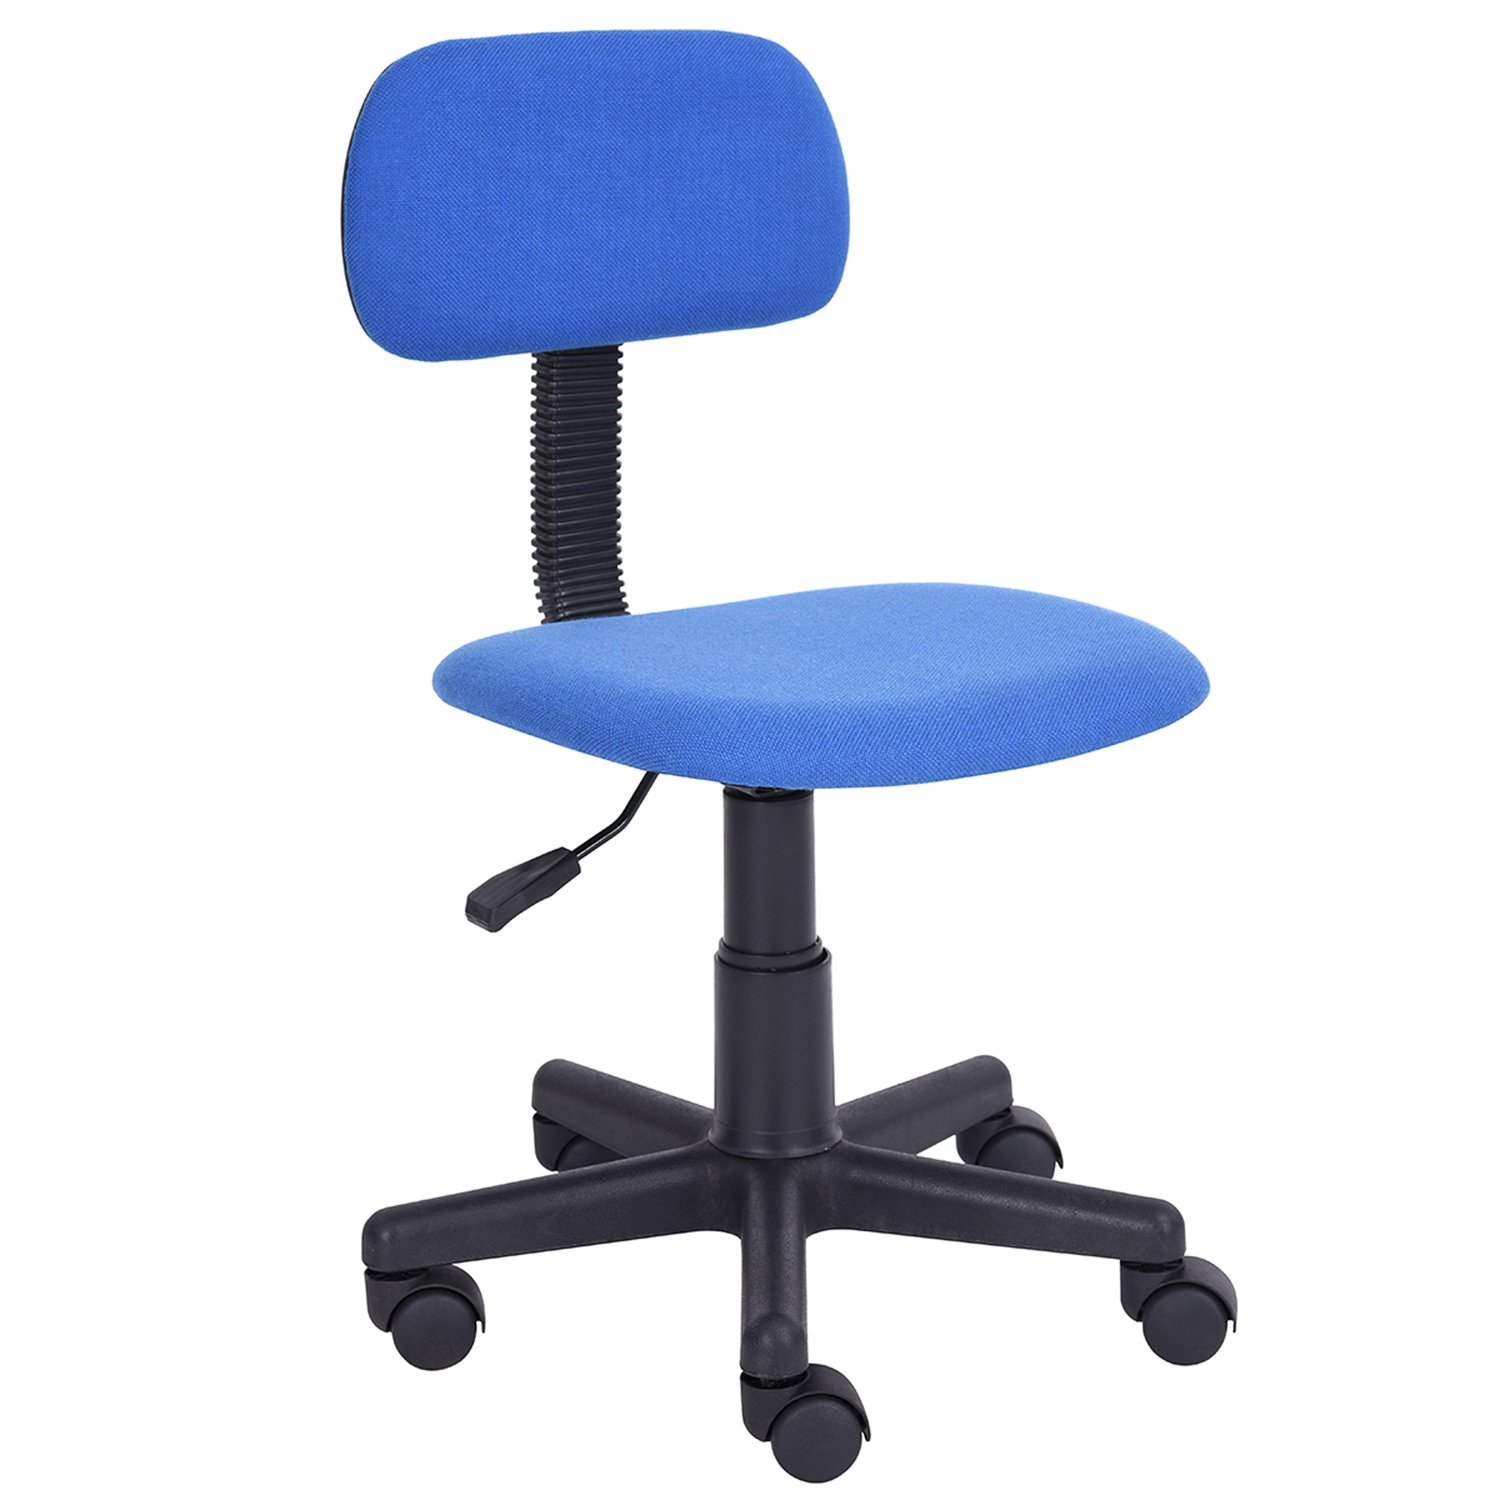 Homycasa Yanyan Mesh Mid-back Executive Adjustable Computer Task Desk Office Chairs (Blue)